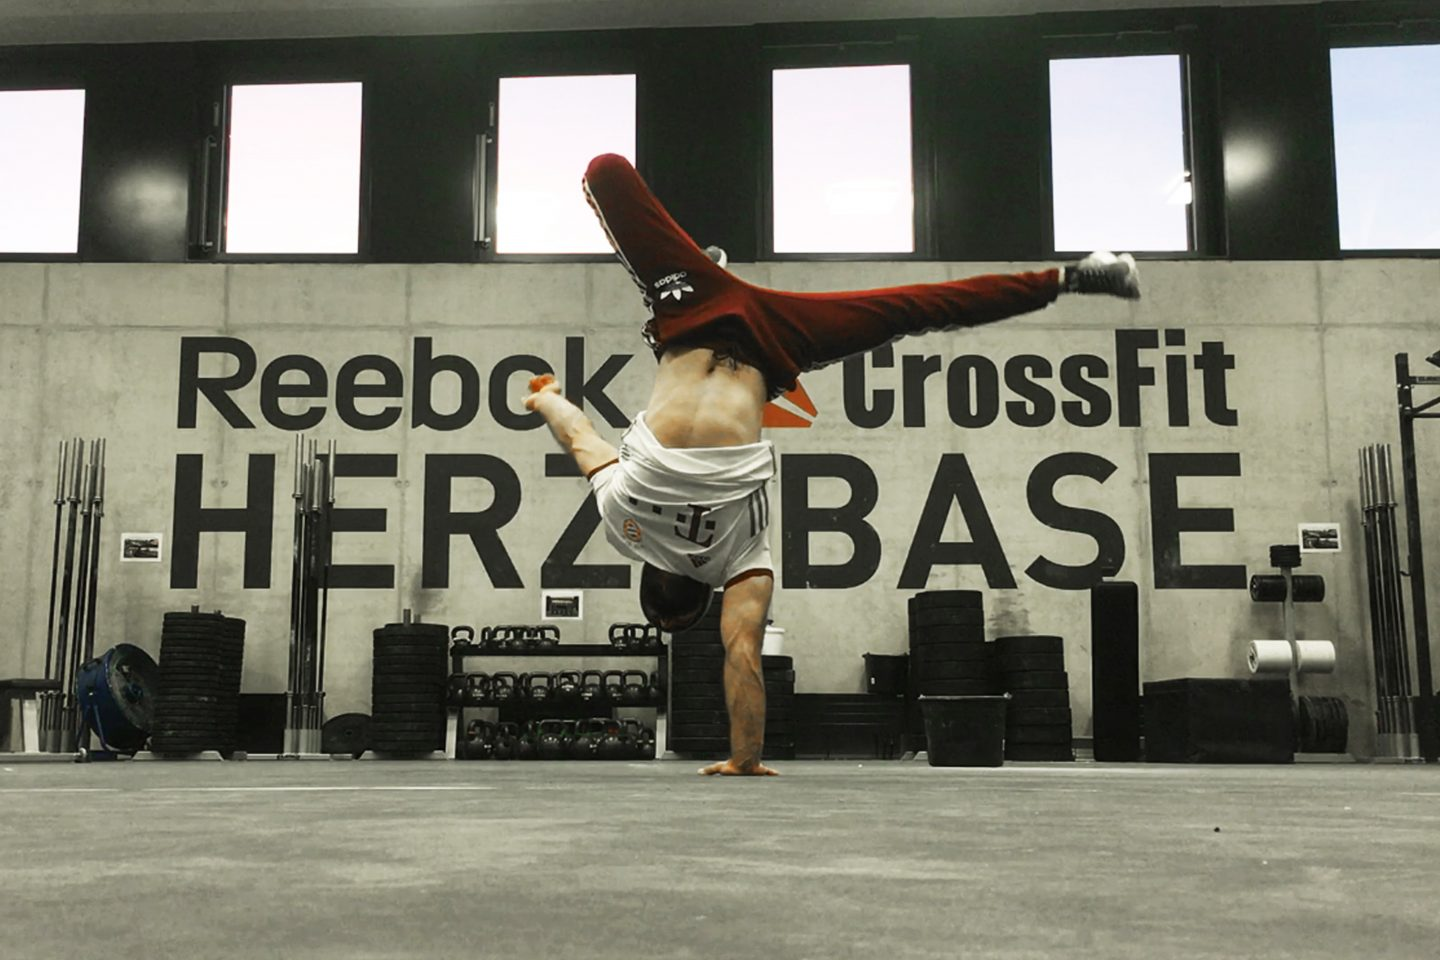 Breakdancer does a handstand side kick in Reebok Crossfit Herzo Base gritty gym as part of his passion for dancing. dancing, passion, dancer, hobby.